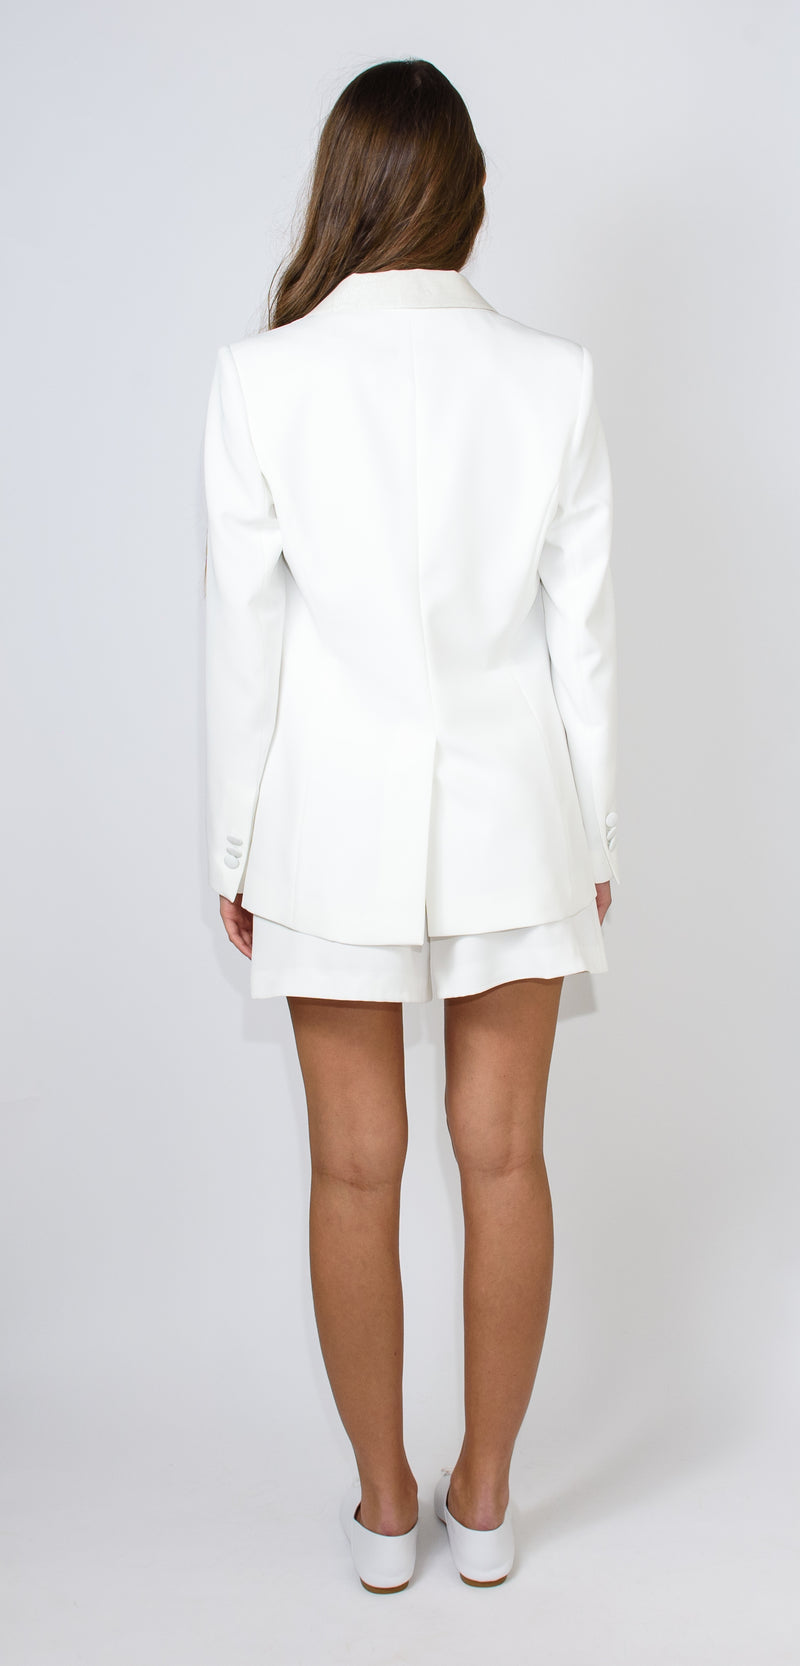 Breras Milano White jacket with a button and silver micro glitter on the collar